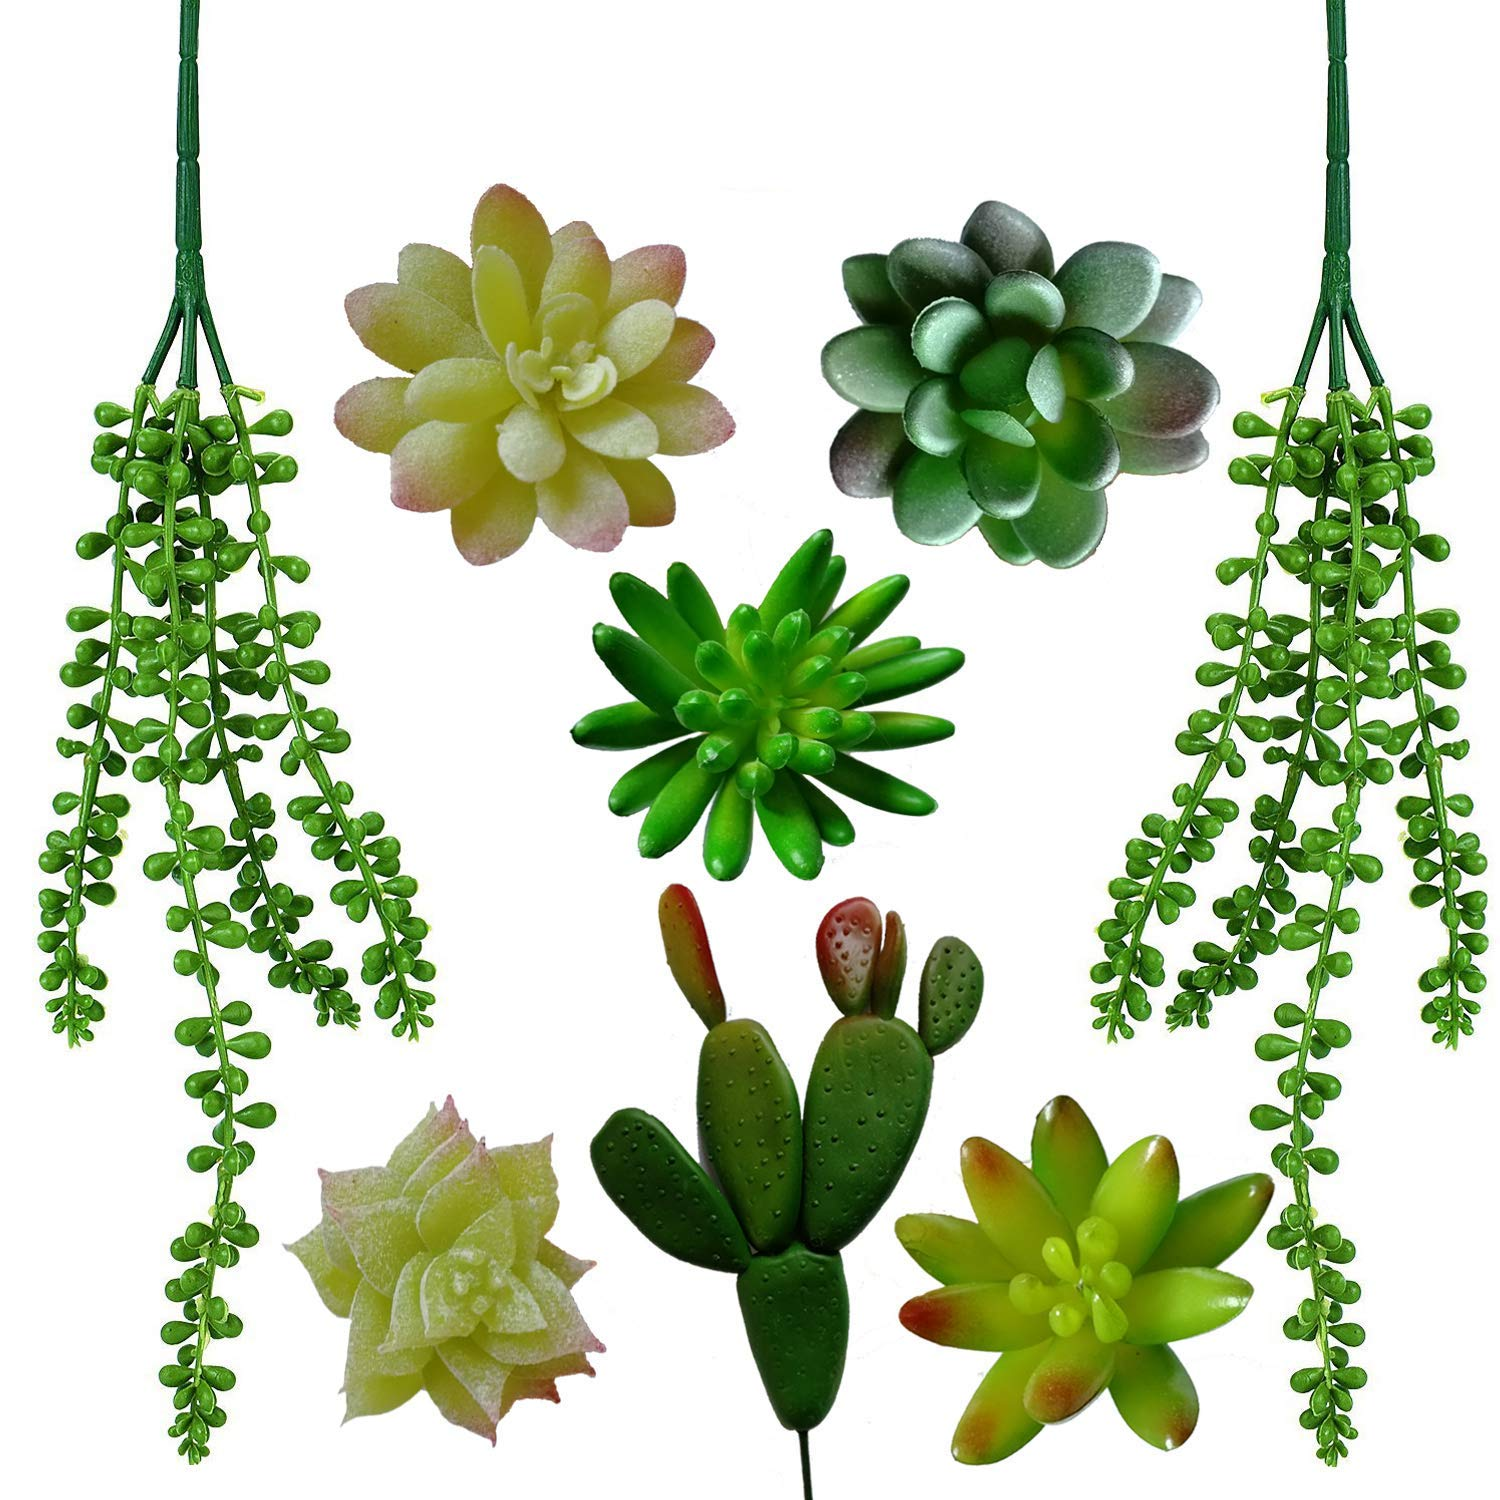 Maycoo 8 Pcs Unpotted Artificial Succulents, Assorted Fake Succulent Plants GreenFaux Succulent Plant for Home Decor